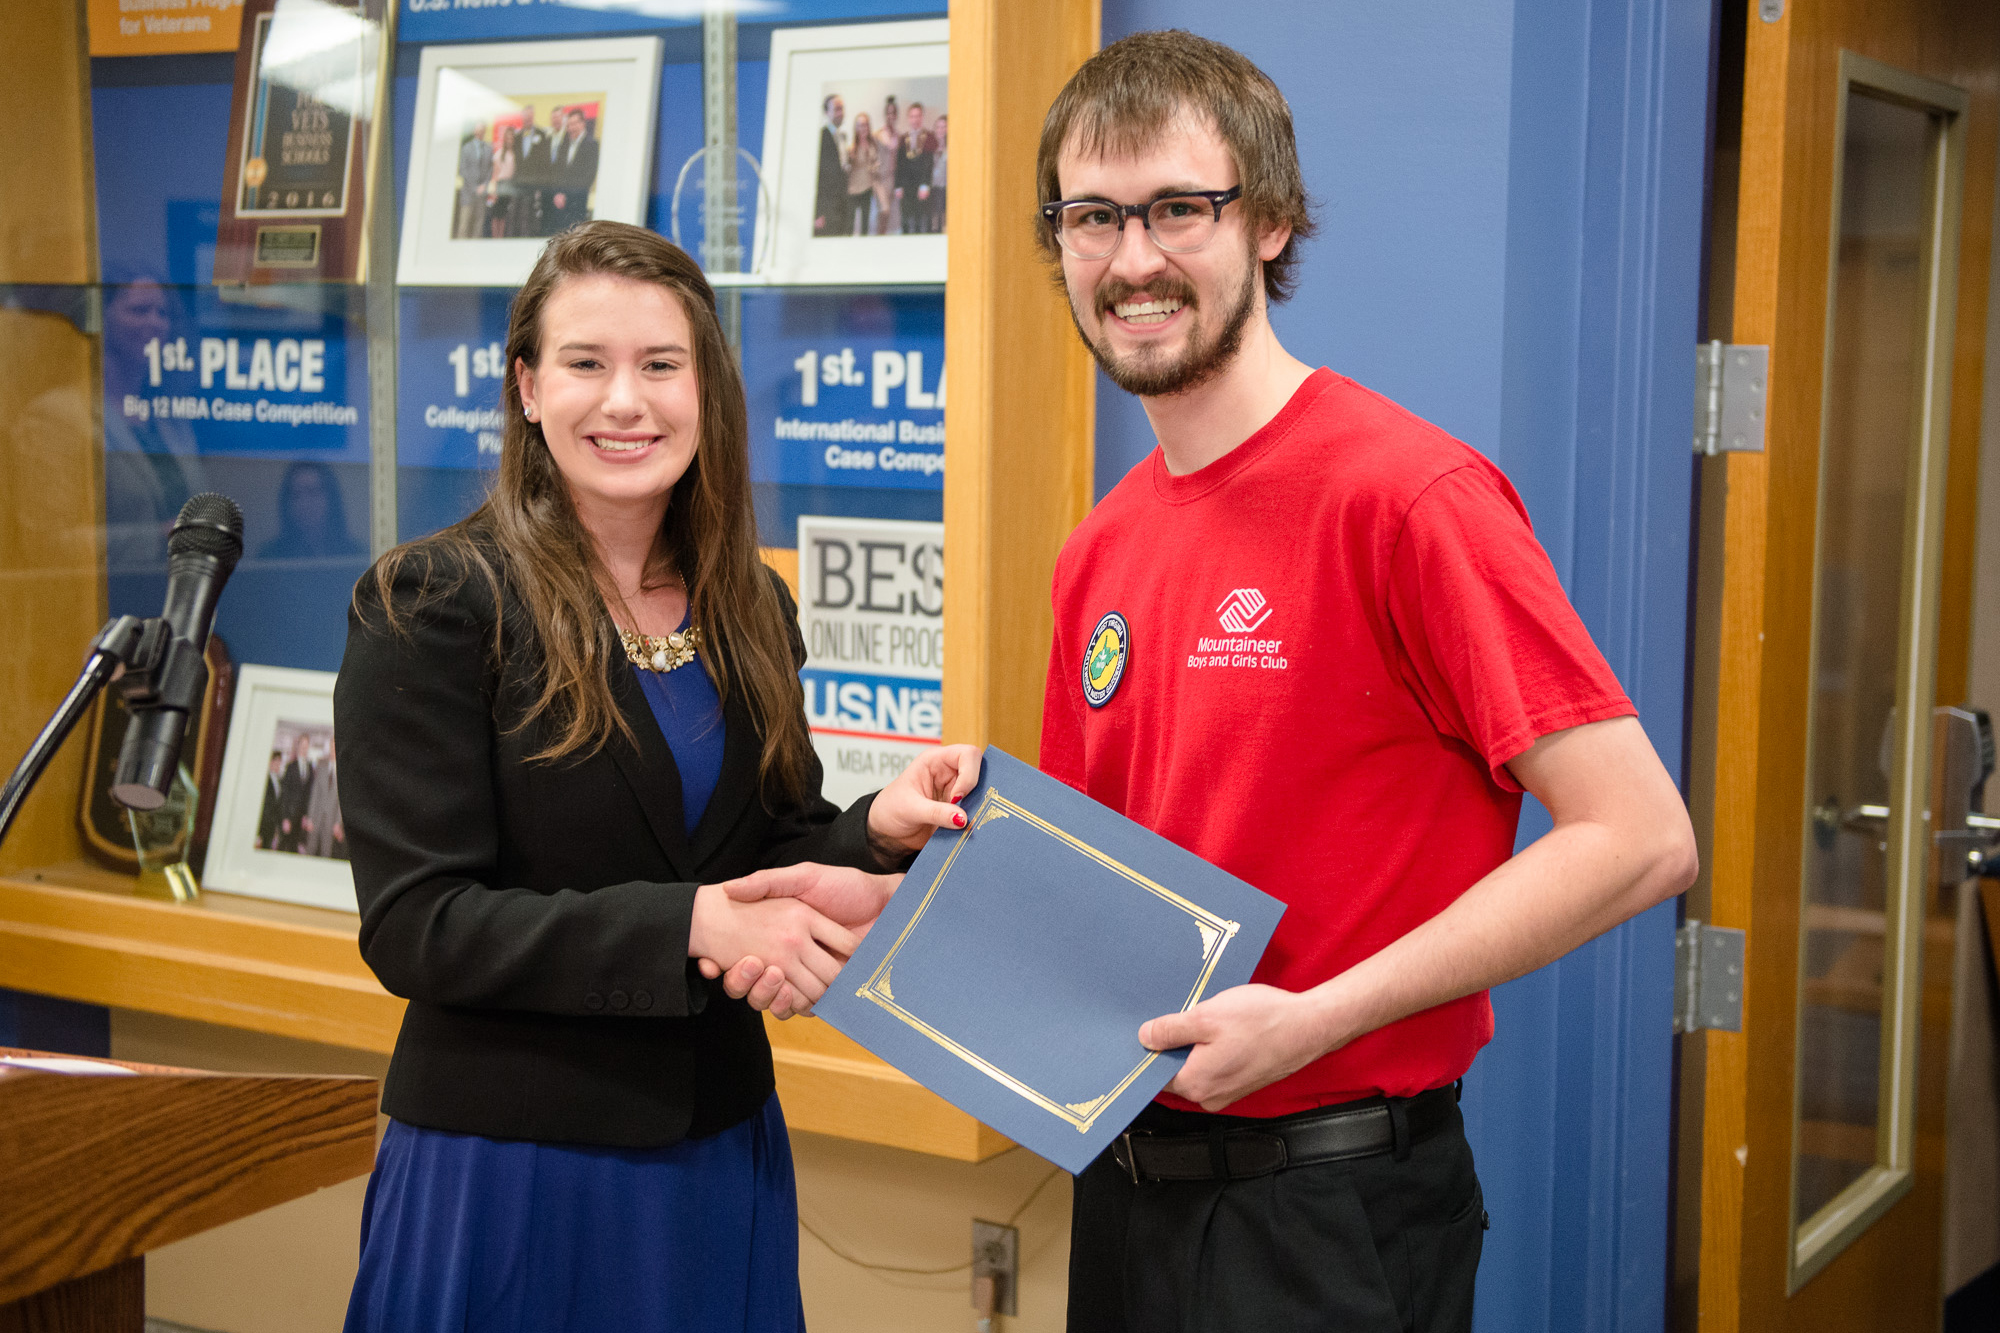 Each year, the Corporate Social Responsibility course within the WVU College of Business and Economics awards grants between $300 and $3,000 to nonprofits organization in the greater Morgantown community.